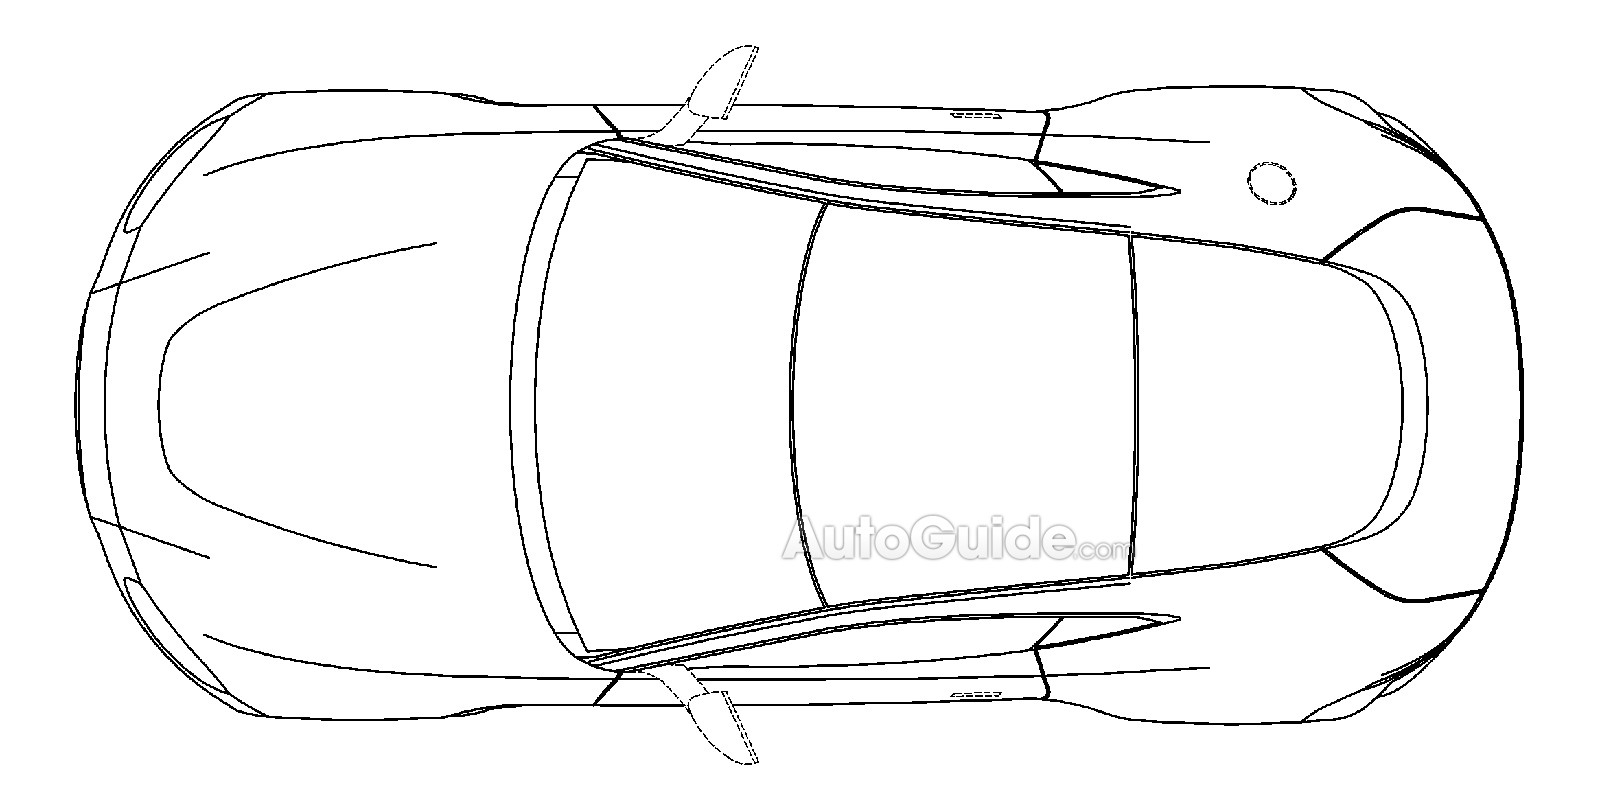 aston martin vantage patent drawing